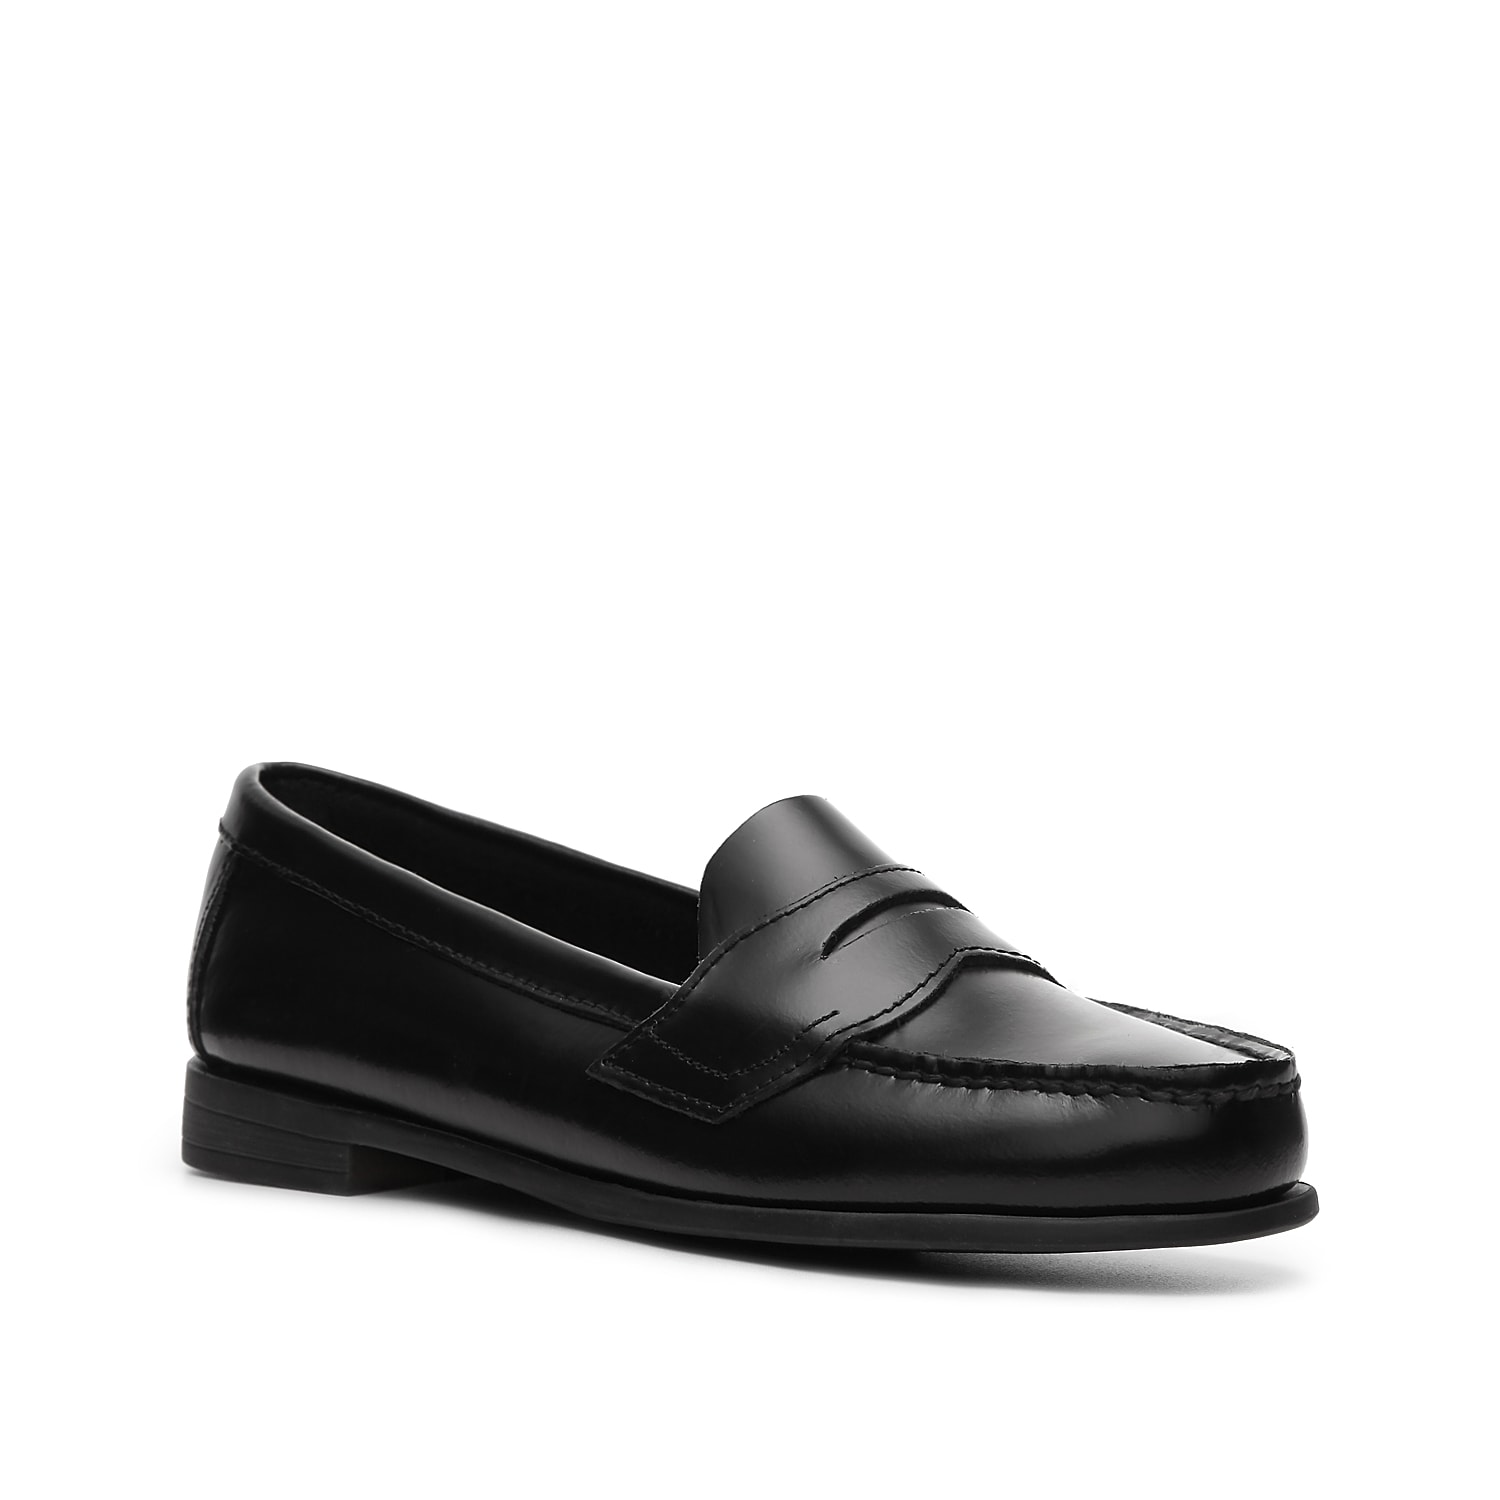 Never sacrifice comfort for style again! The Eastland Classic II loafer is the perfect dress or casual style that will perfectly compliment your work wear wardrobe.